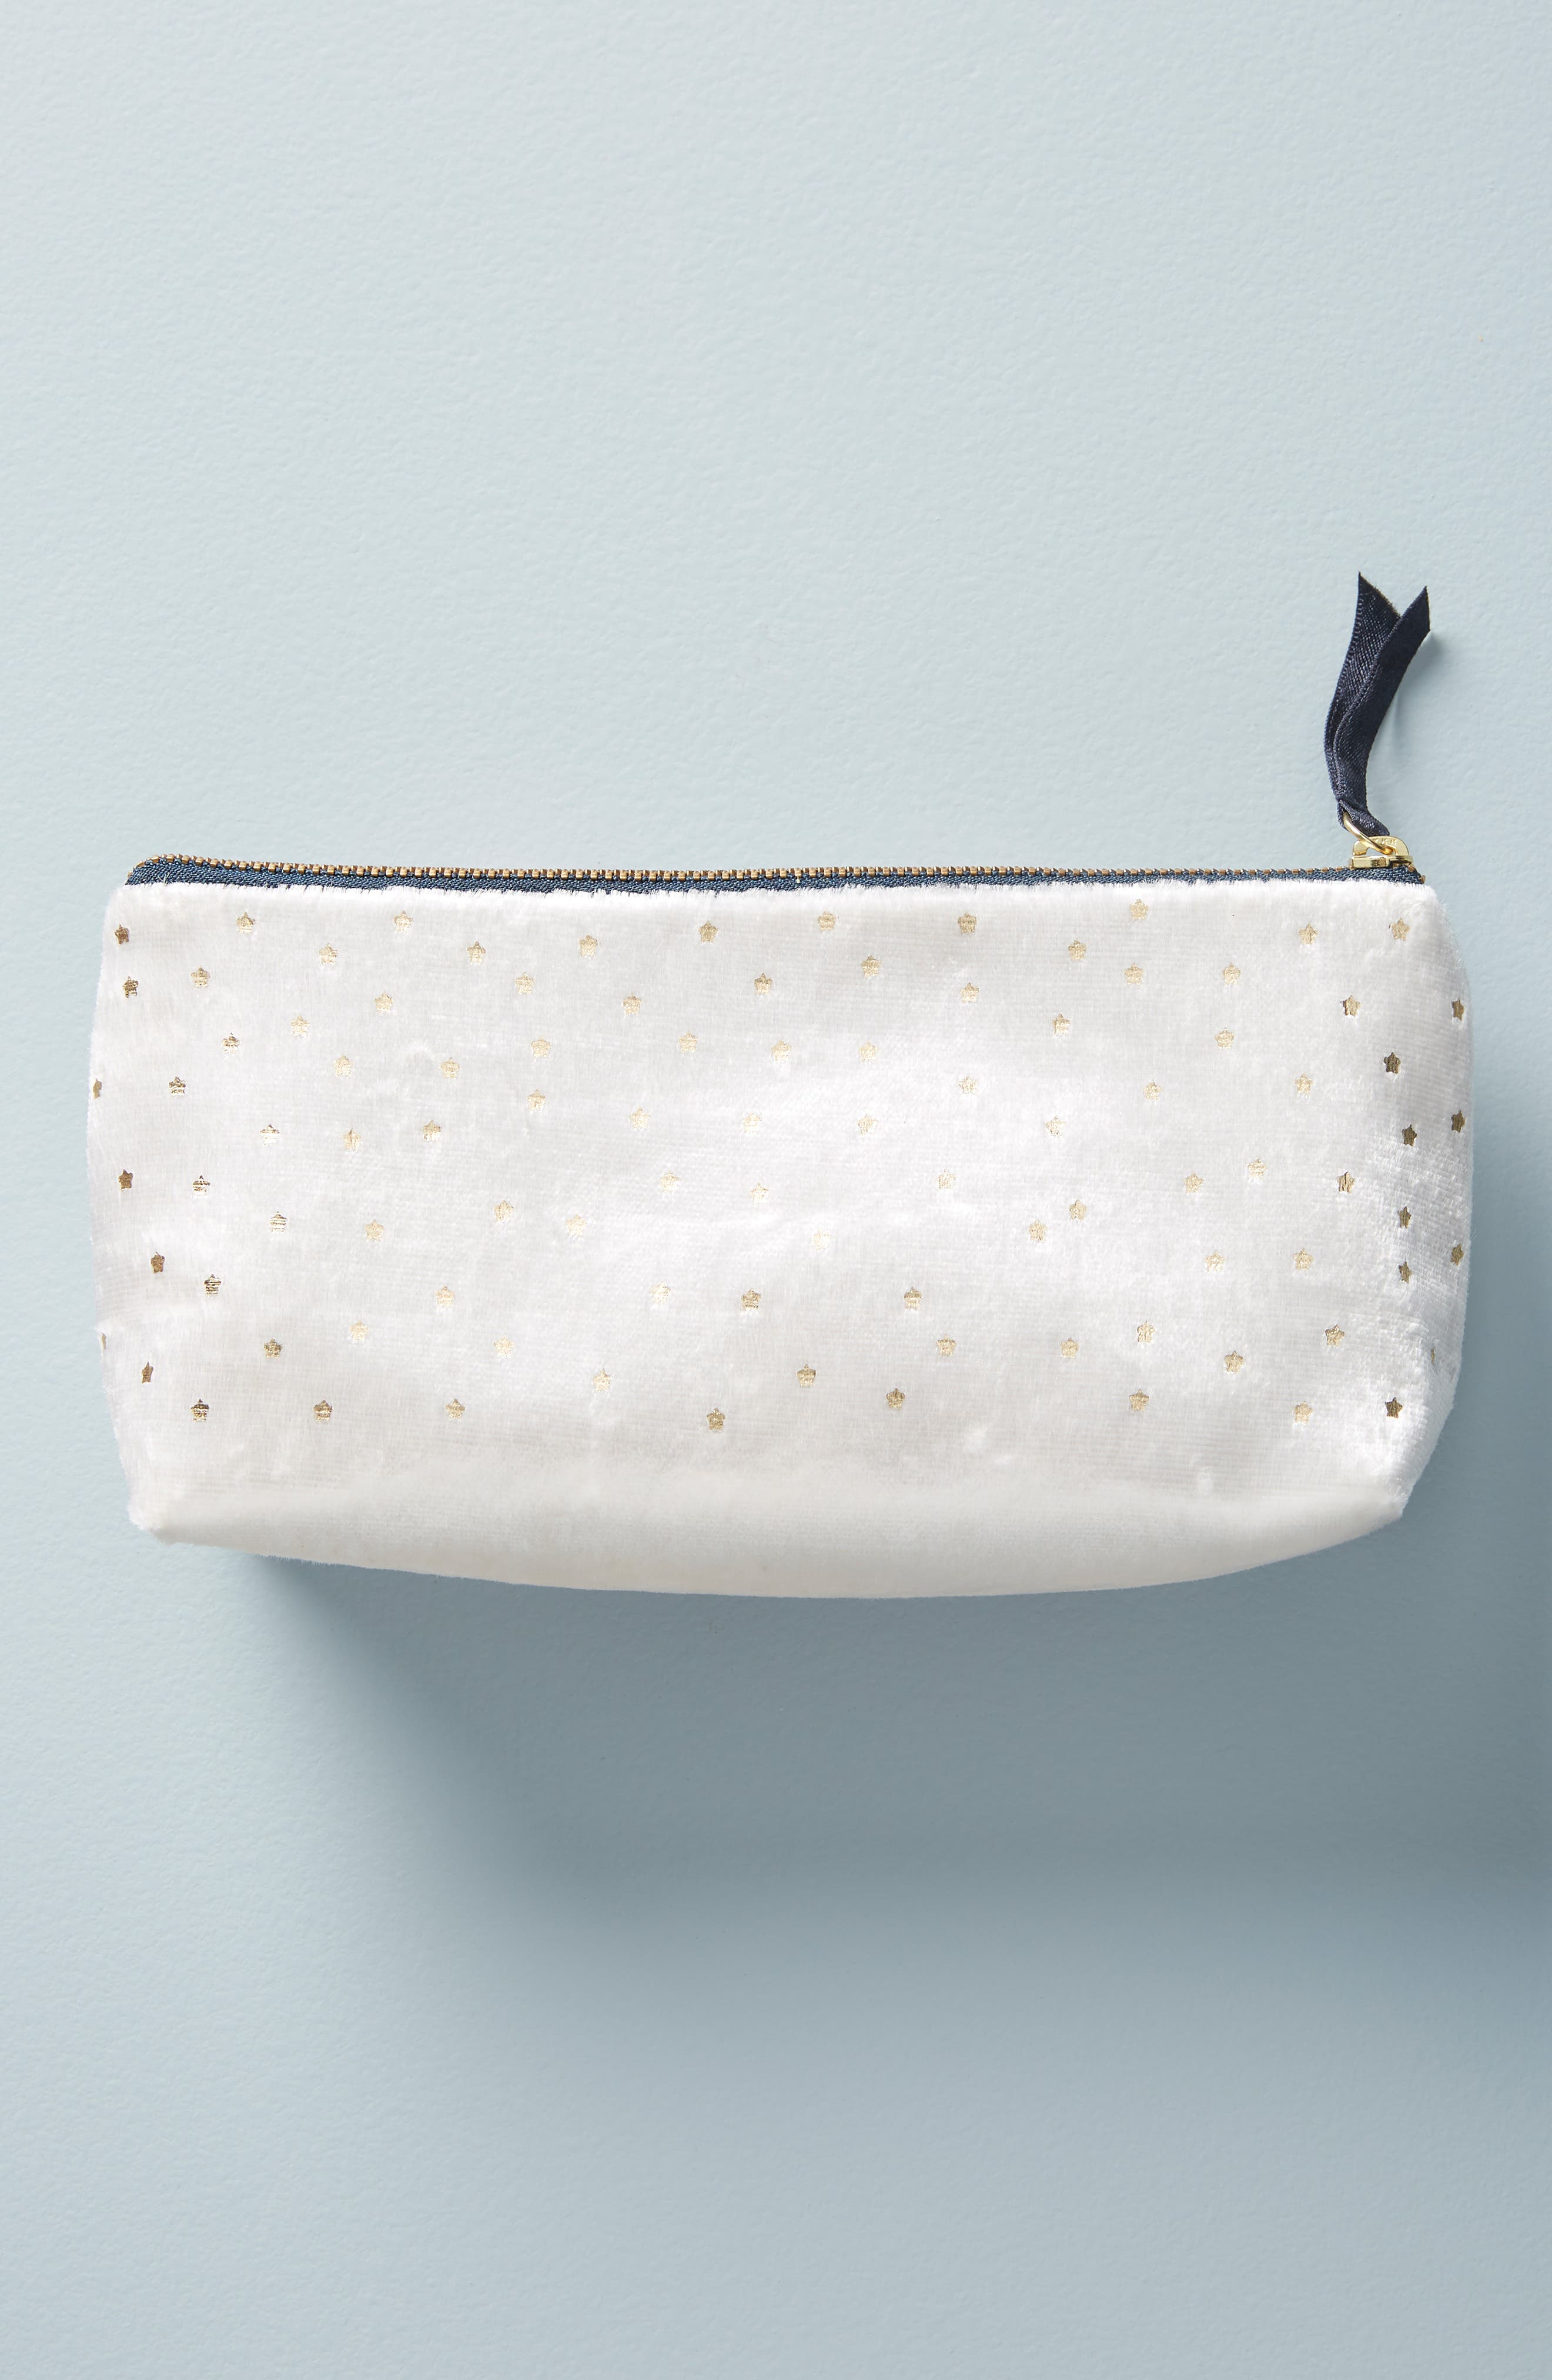 Claire Embellished Pencil Pouch,                             Alternate thumbnail 2, color,                             IVORY